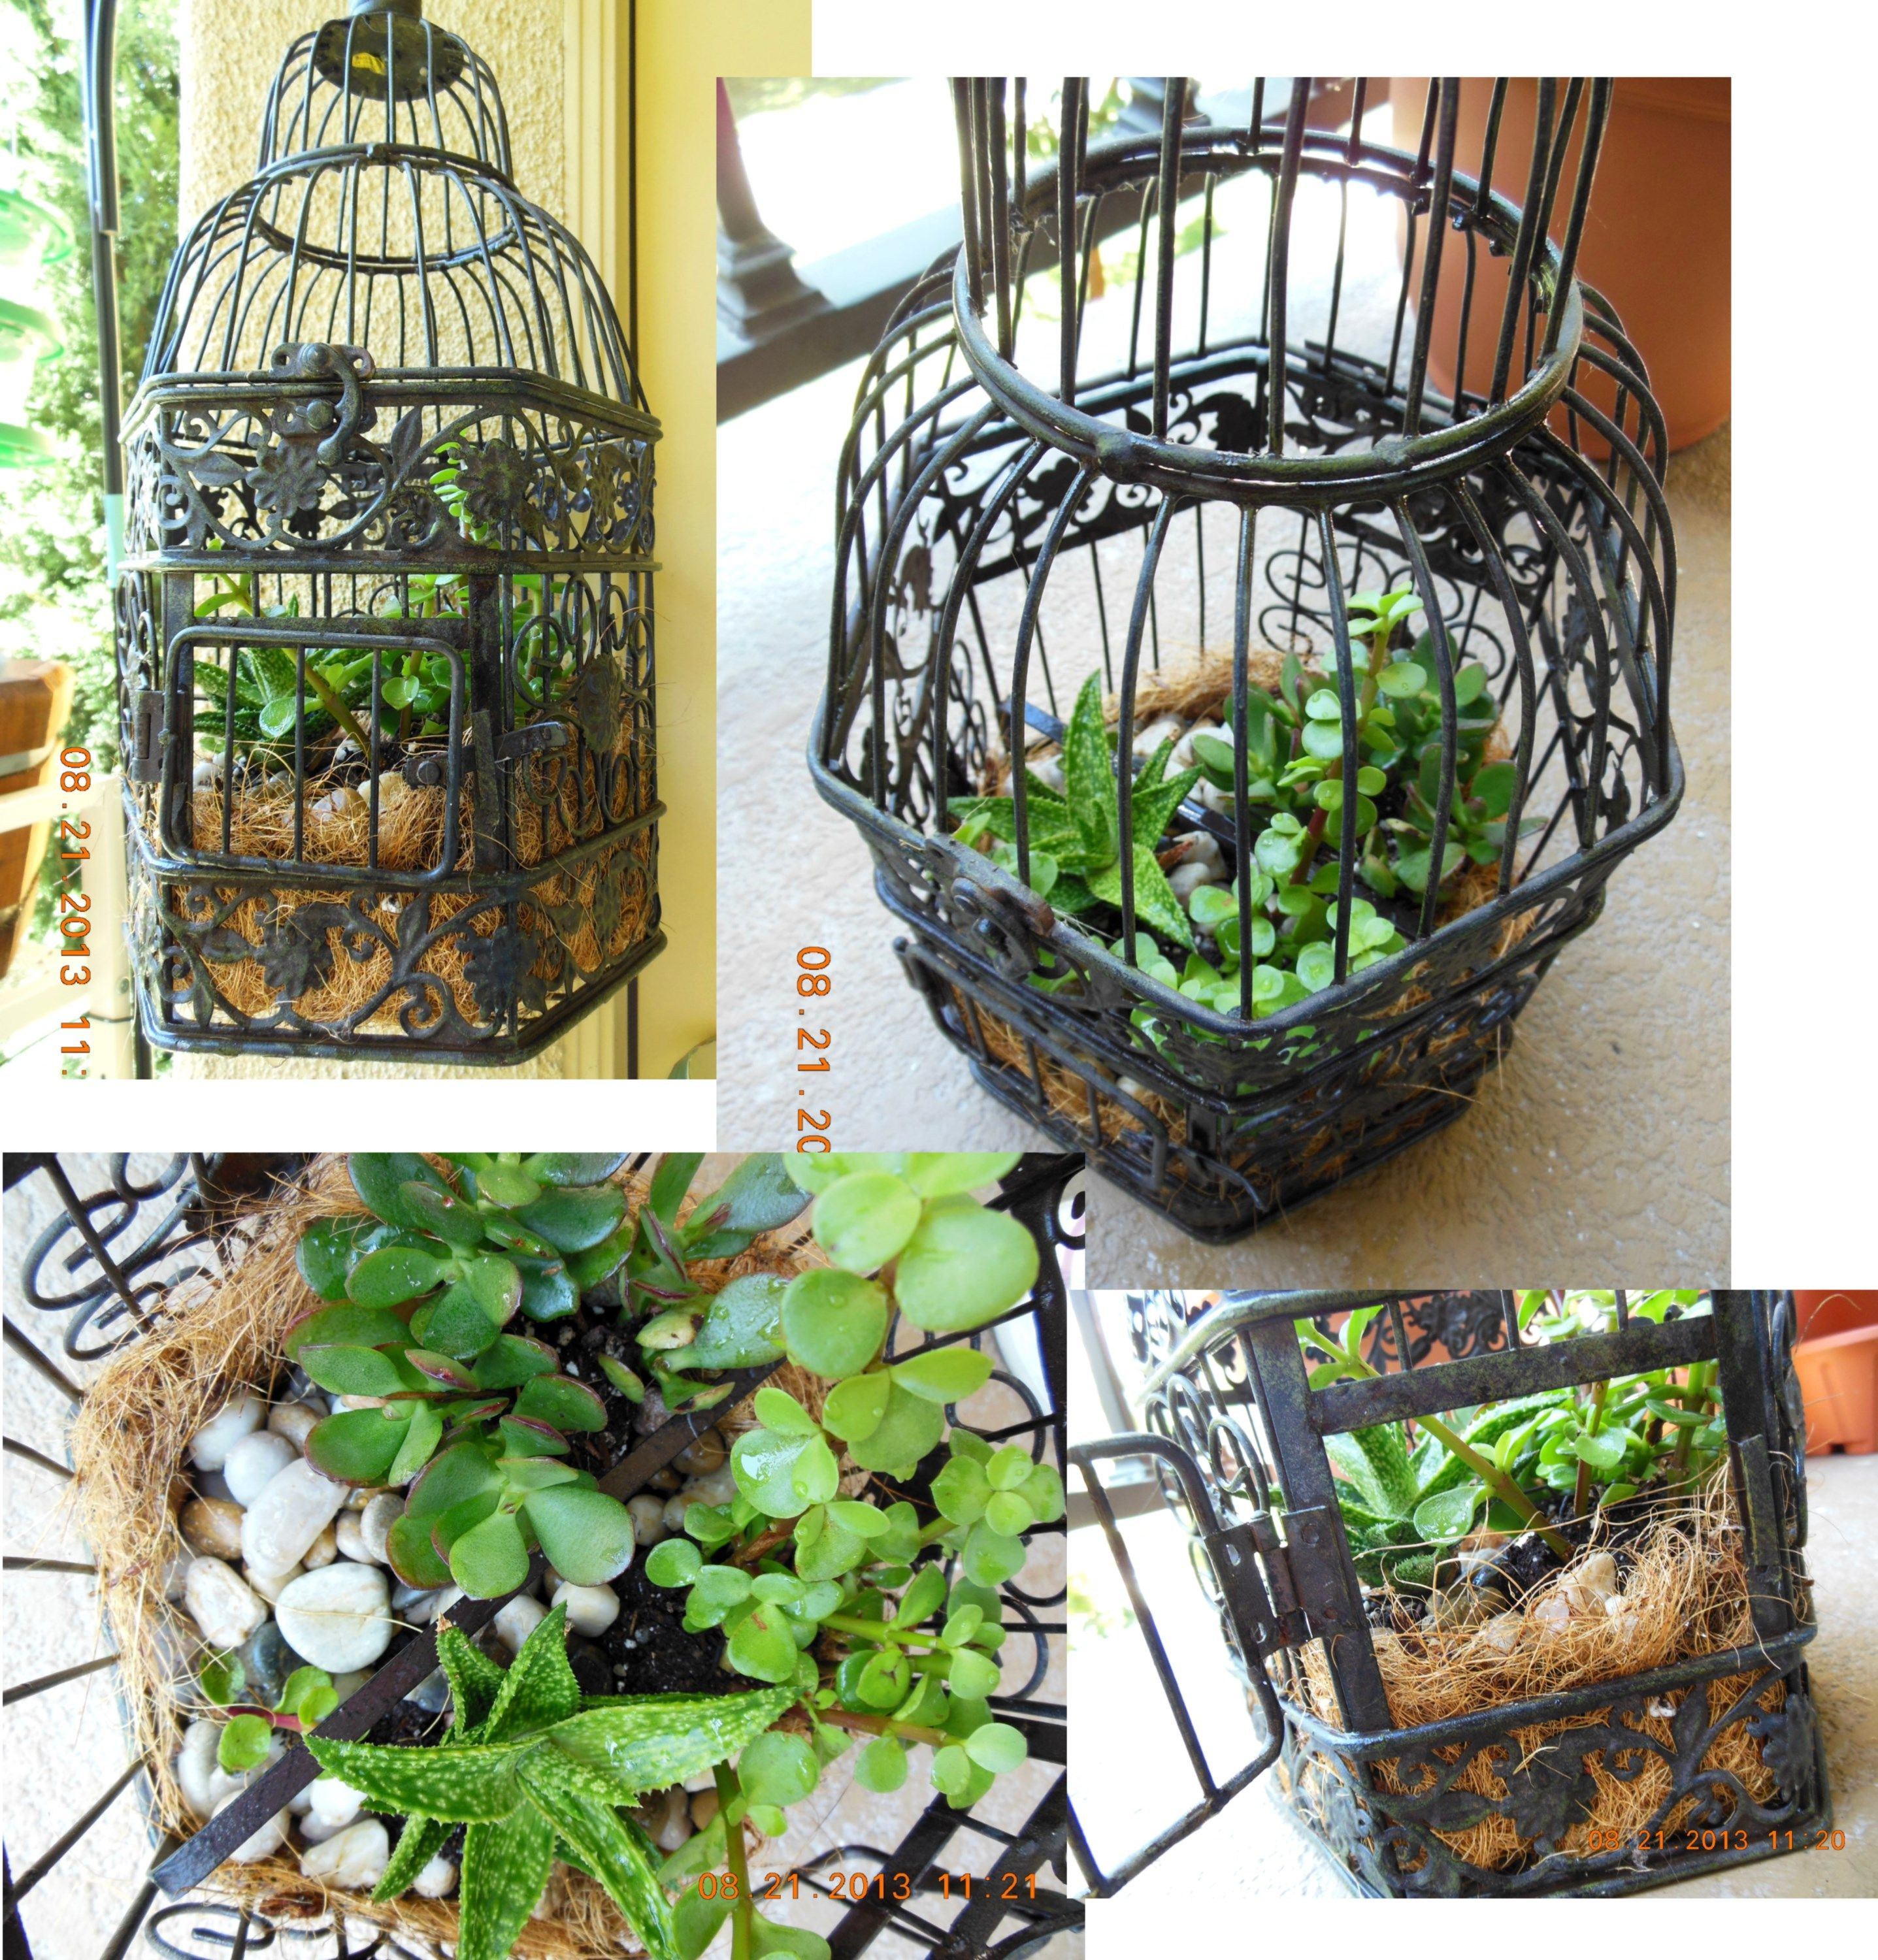 Minigarden in metal birdcage. Cage 6 at Ross department